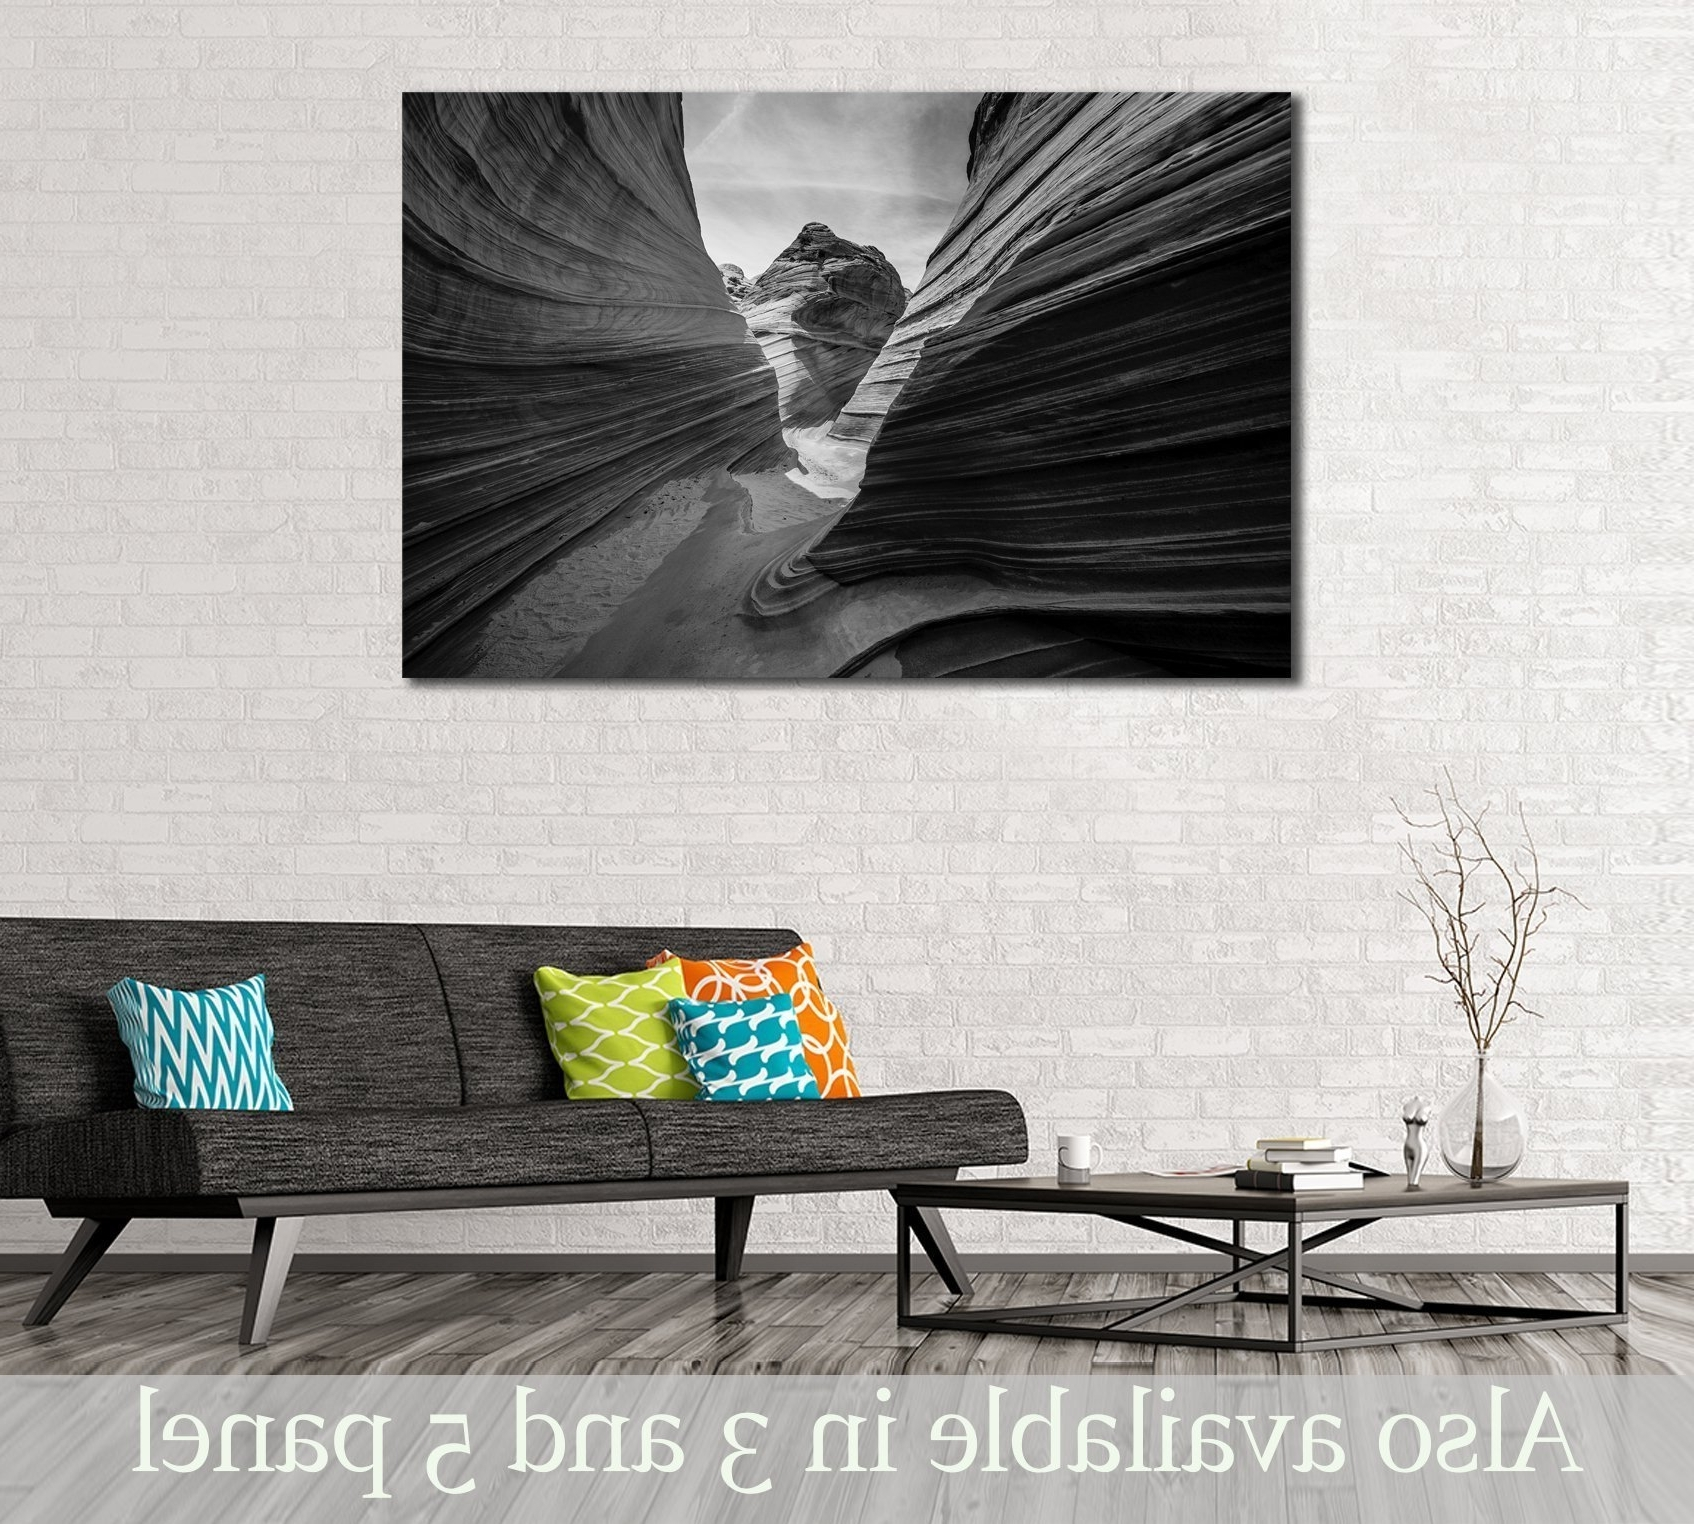 Most Current Incredible Mountains Wall Art At Zellart Canvas Of Arizona Popular With Arizona Wall Art (View 11 of 15)